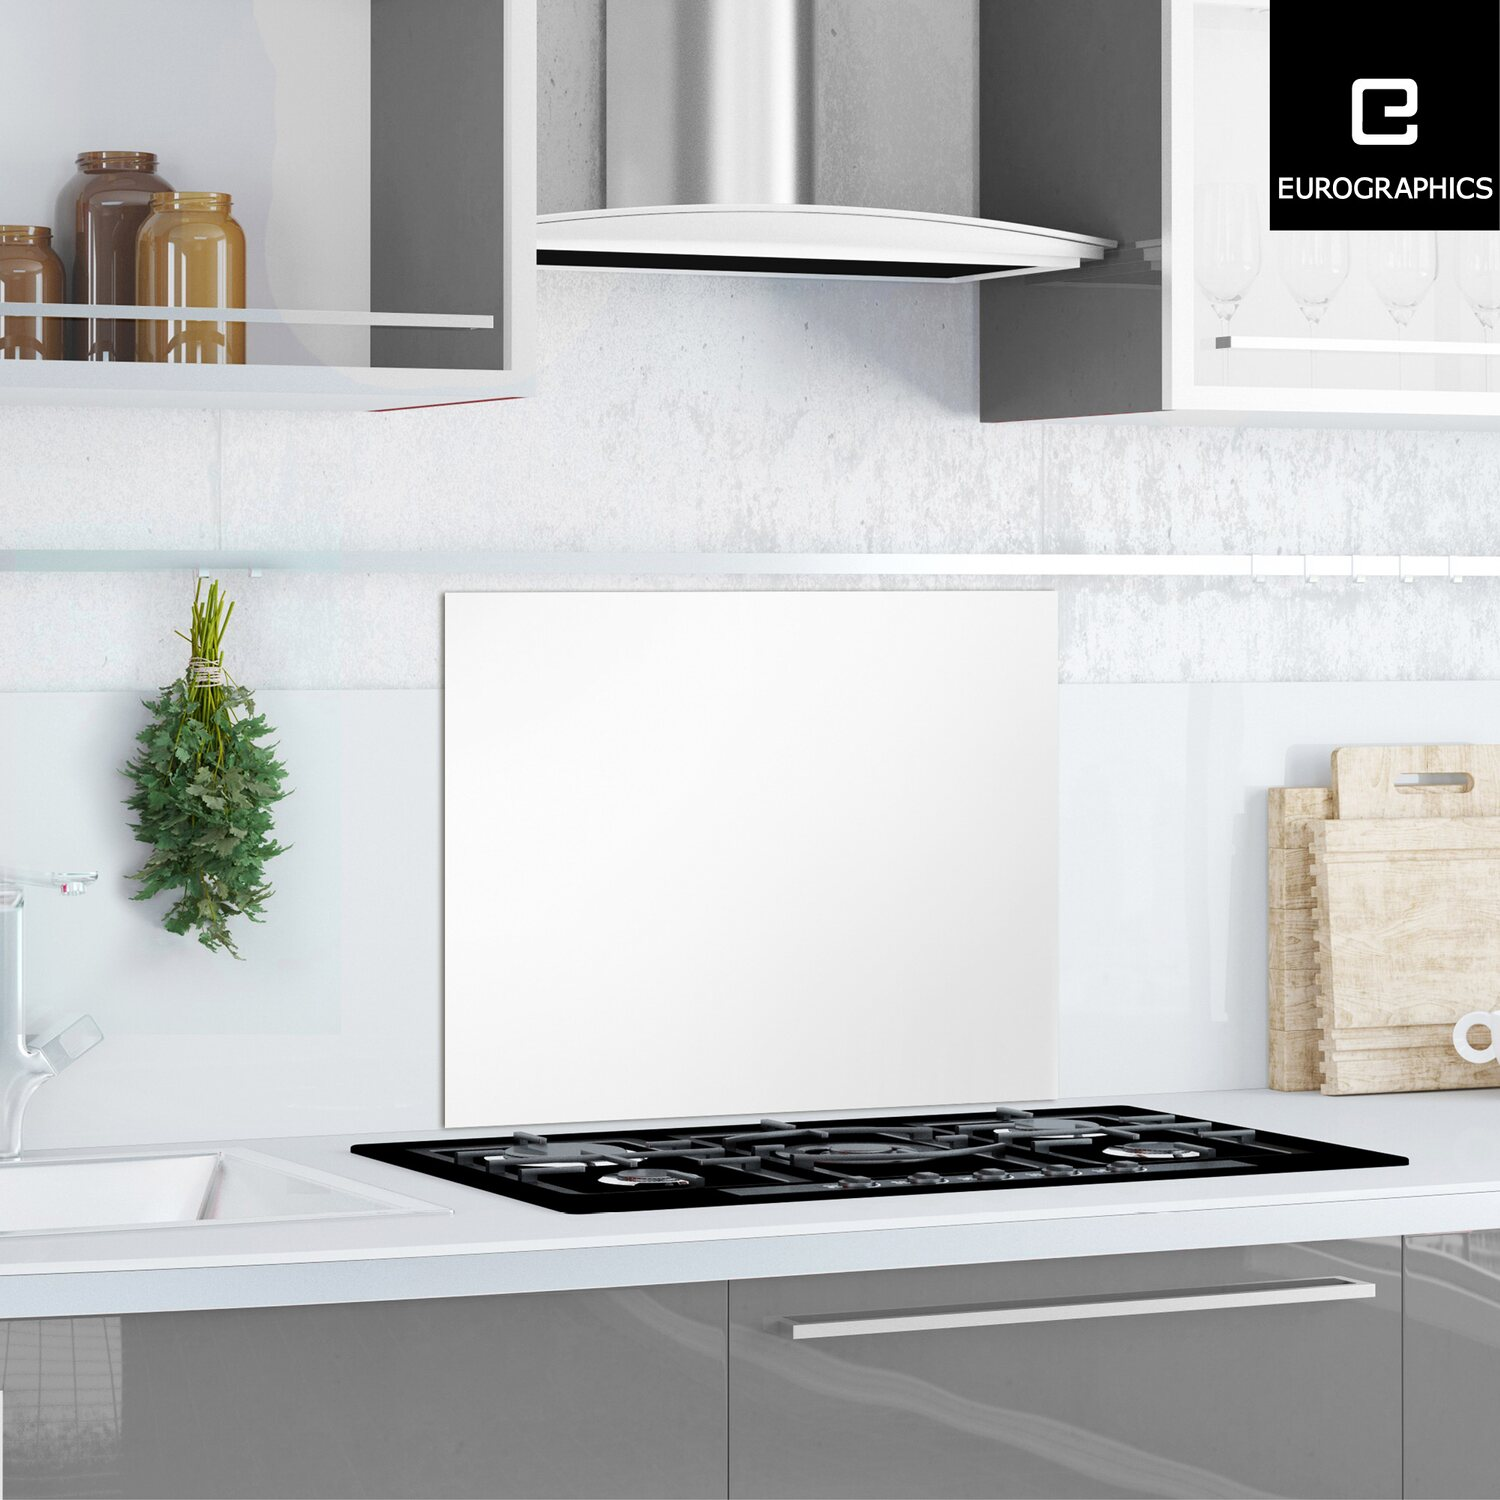 kitchen glas spritzschutz white splash guard 50 cm x 60 cm kaufen bei obi. Black Bedroom Furniture Sets. Home Design Ideas